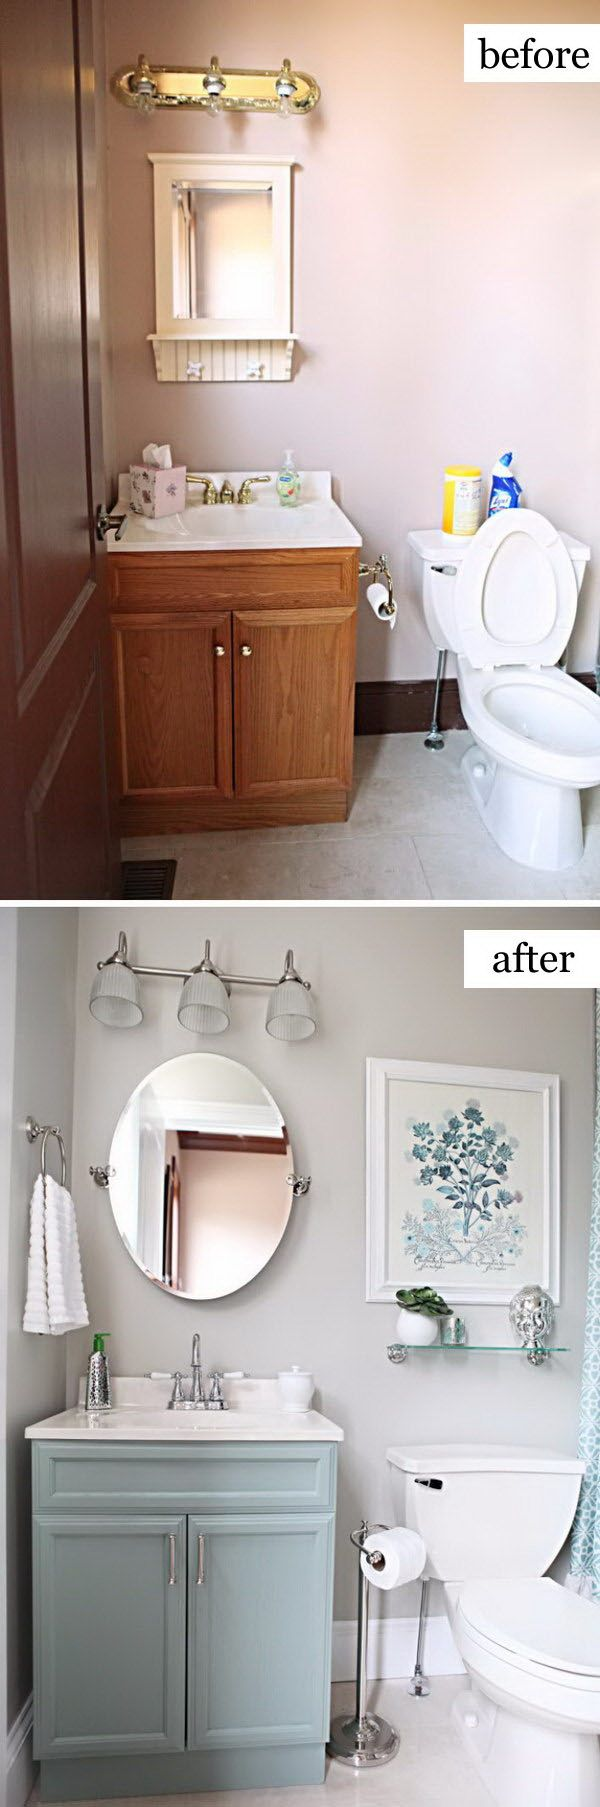 Remodel Bathroom List best 20+ small bathroom remodeling ideas on pinterest | half